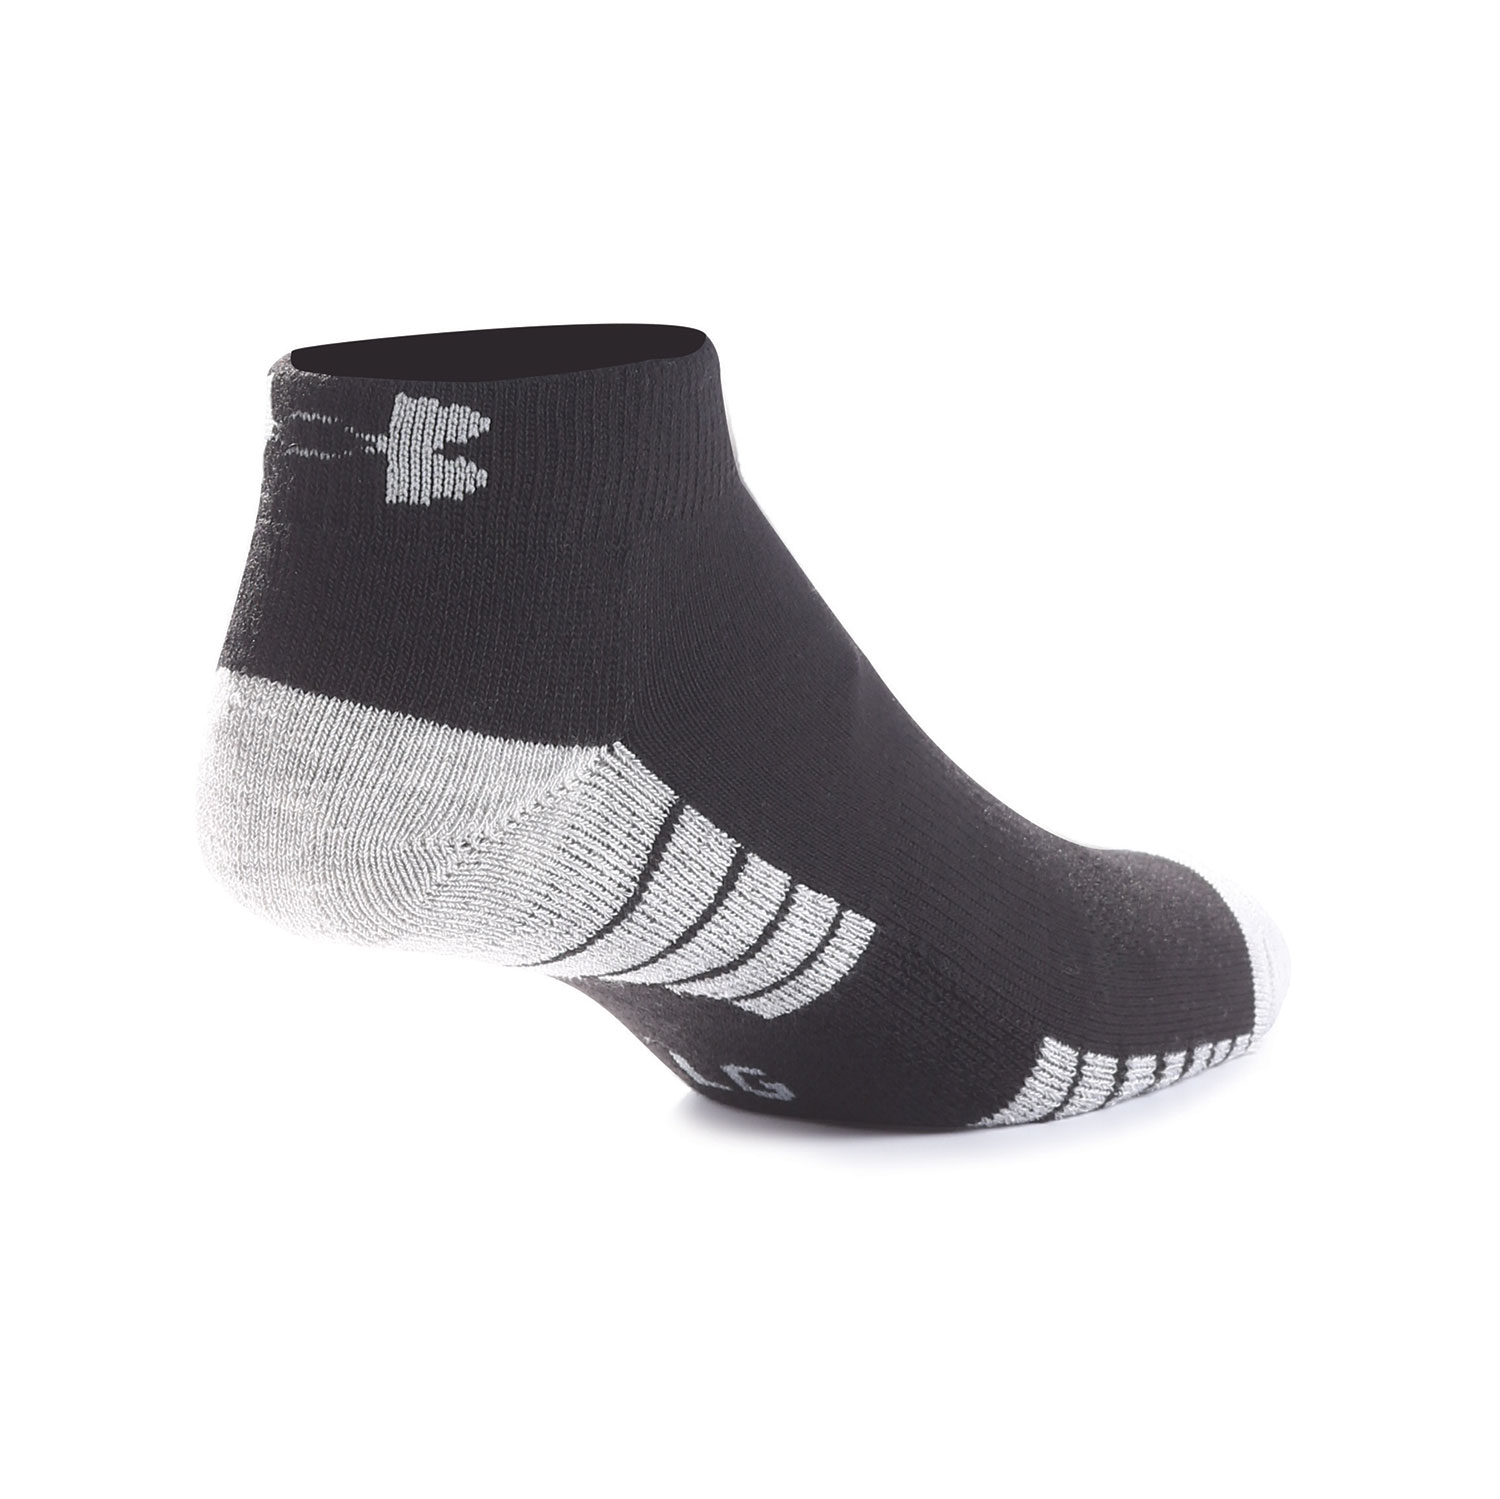 Under Armour HeatGear Tech Low Cut Socks 3 Pack